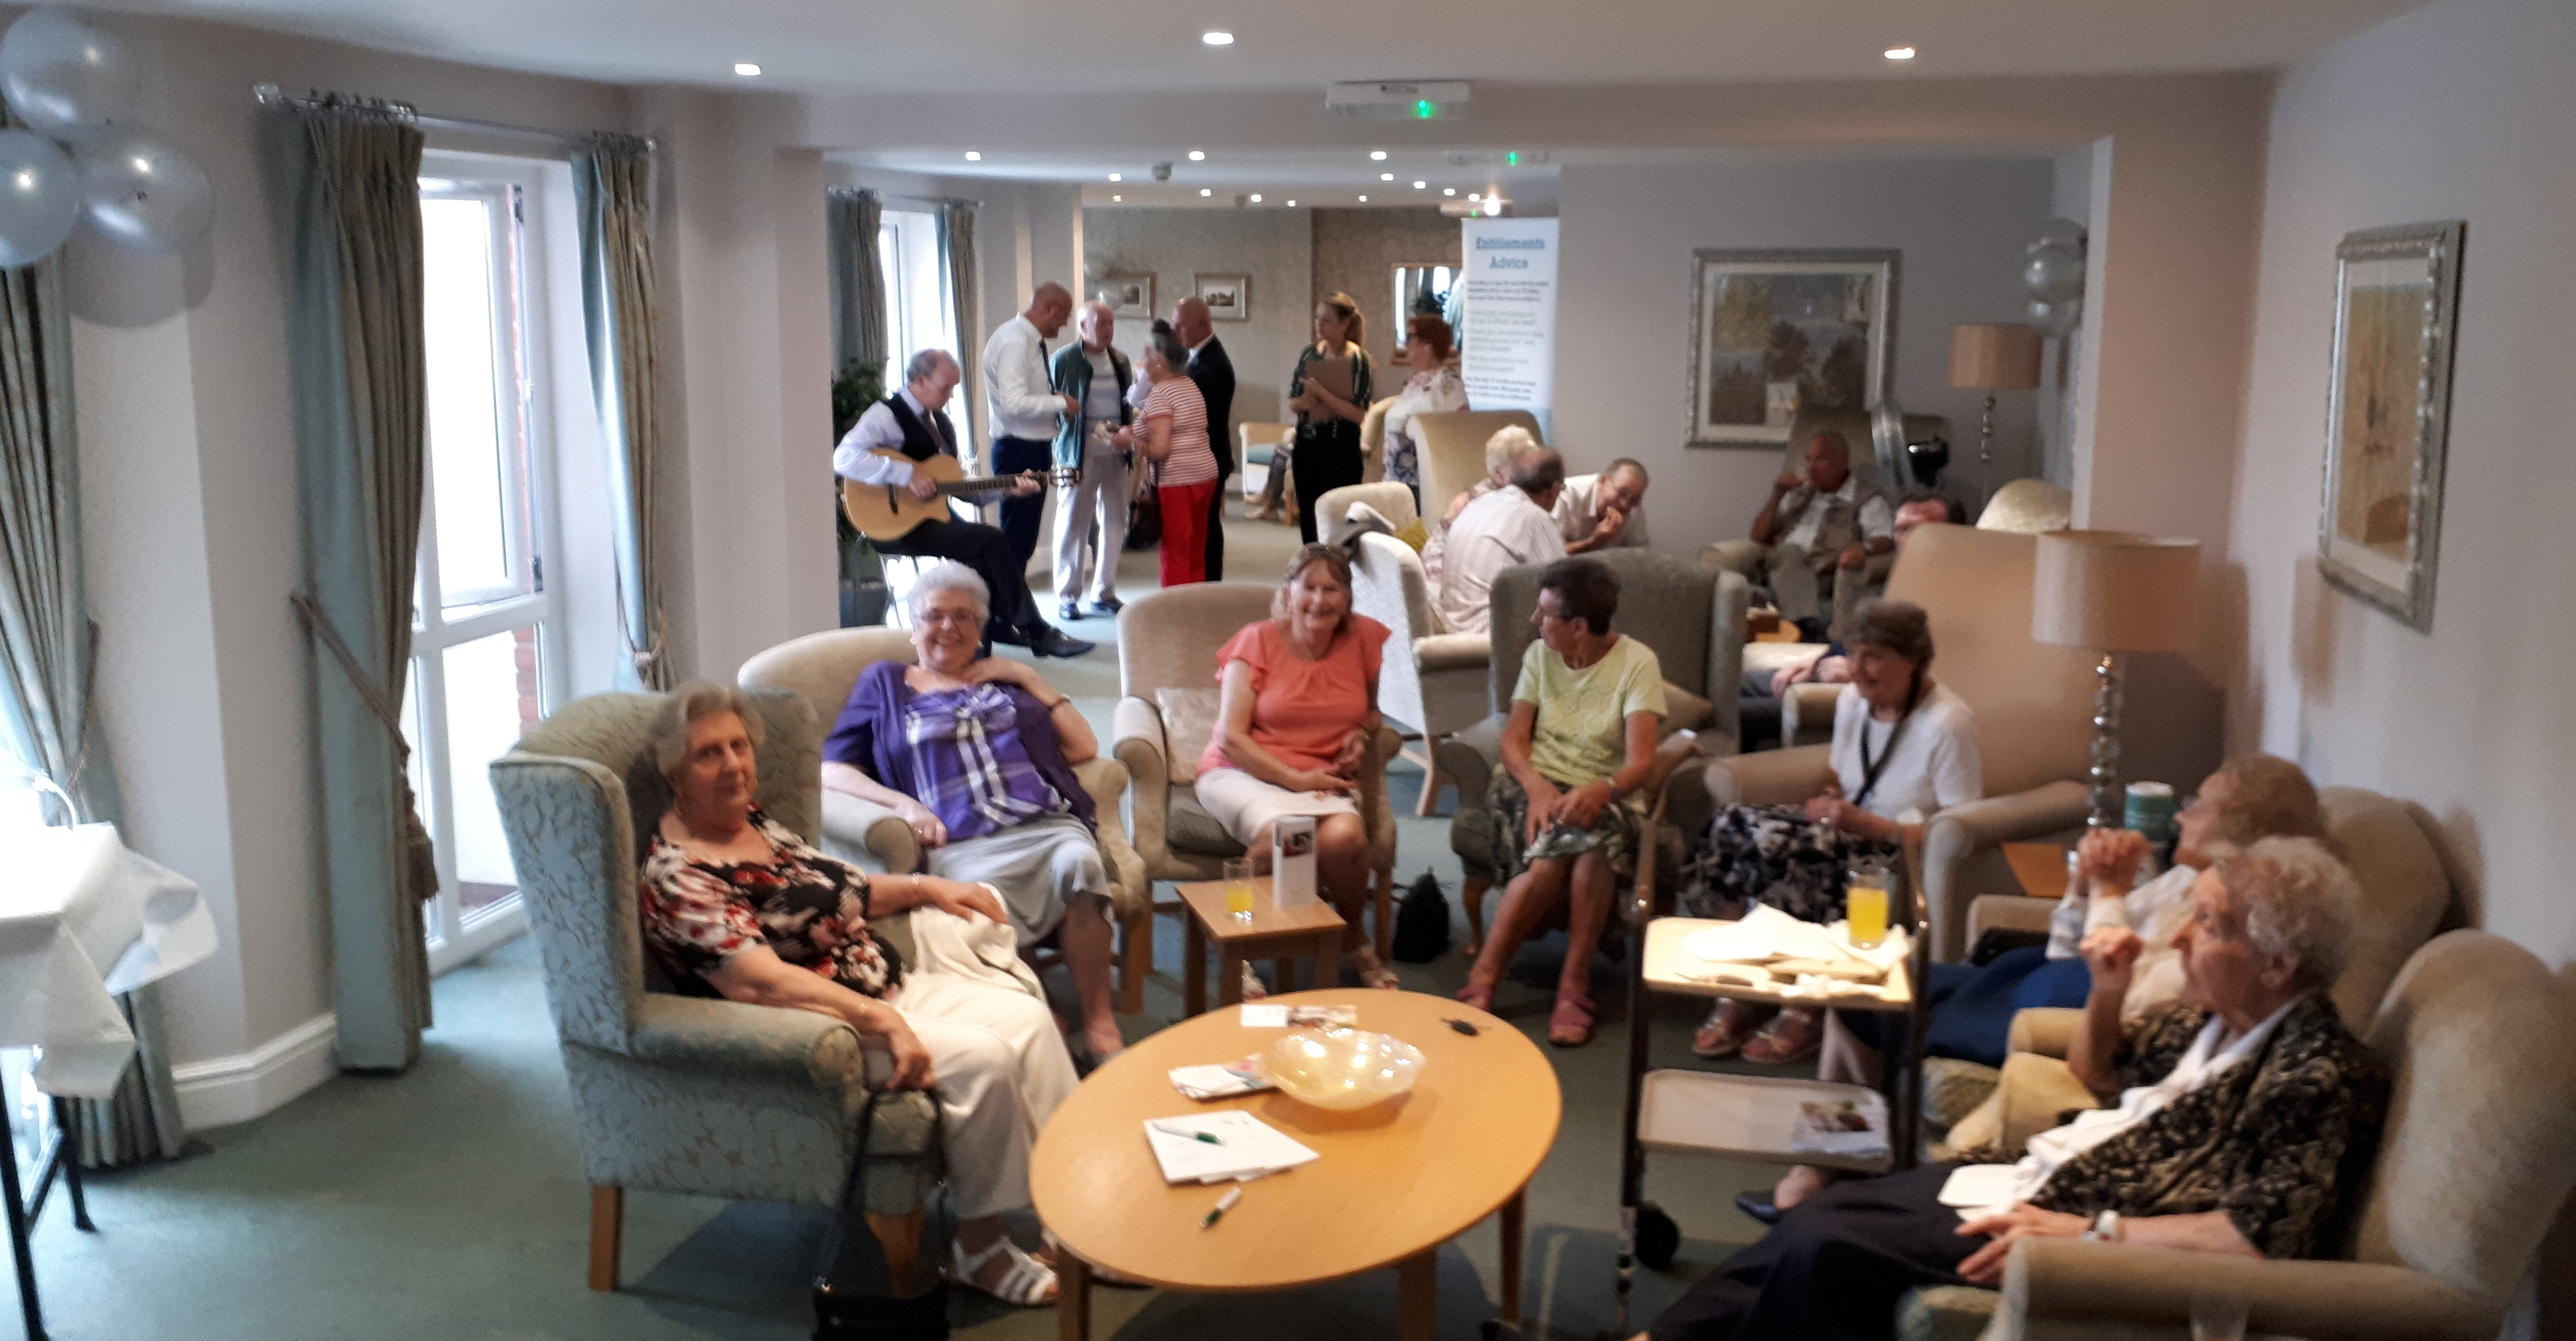 POPPY COURT HOMEOWNERS WELCOME VISITORS FOR AFTERNOON TEA AND ENTERTAINMENT